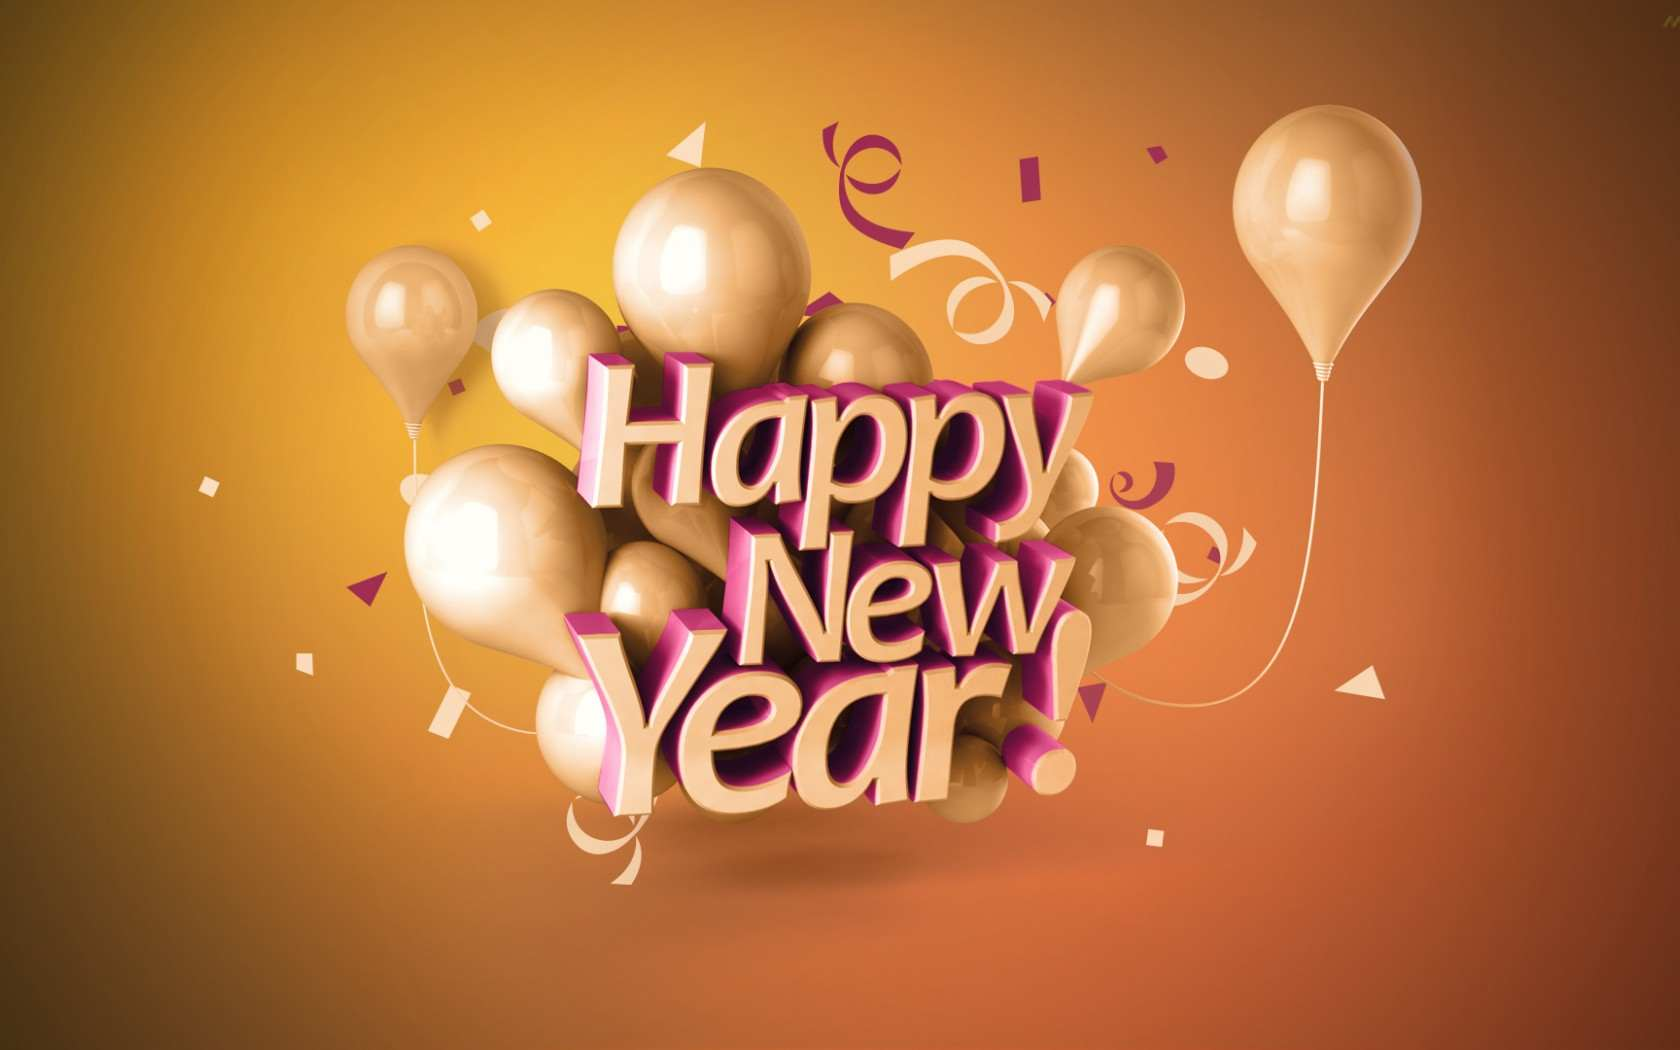 Happy New Year Wallpapers, New Year HD Images 2019 - SRCWAP